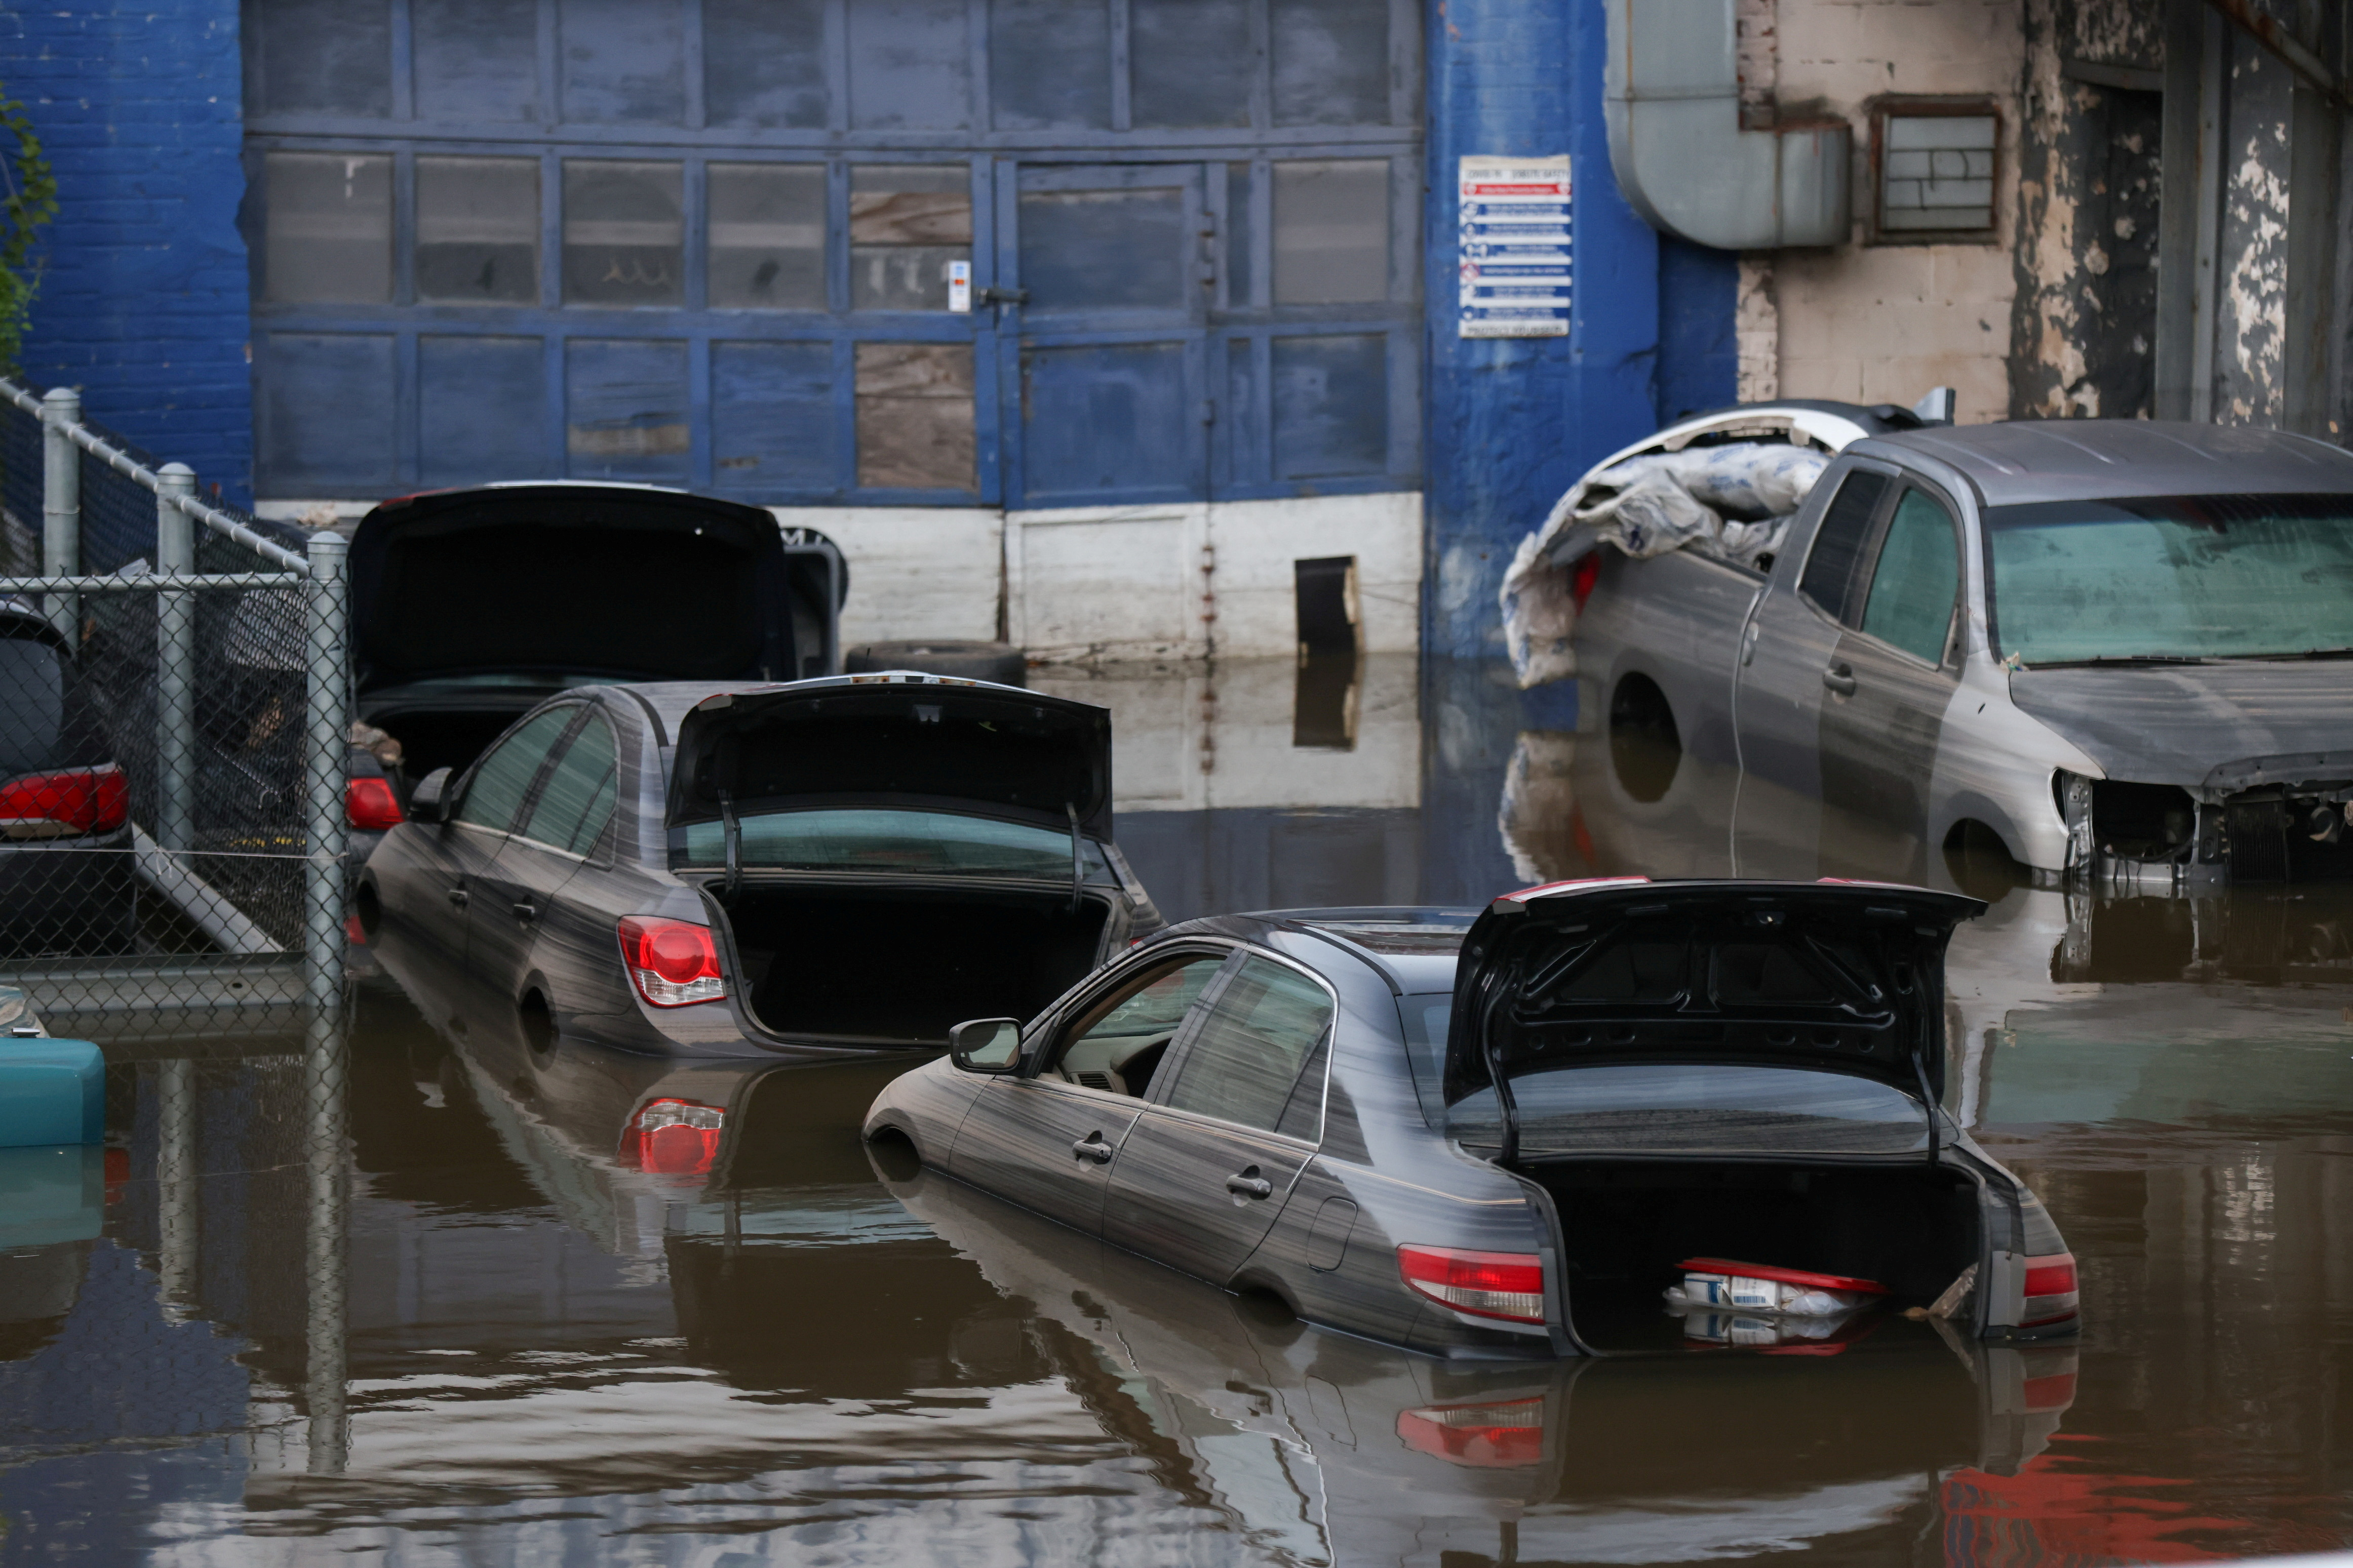 Cars sit in water after flooding on the Major Deegan Expressway spilled over into the neighboring street and flooded a parking lot, when the remnants of Tropical Storm Ida brought drenching rain and the threat of flash floods and tornadoes to parts of the northern mid-Atlantic, in the Bronx borough of New York City, U.S., September 2, 2021. REUTERS/Caitlin Ochs/File Photo